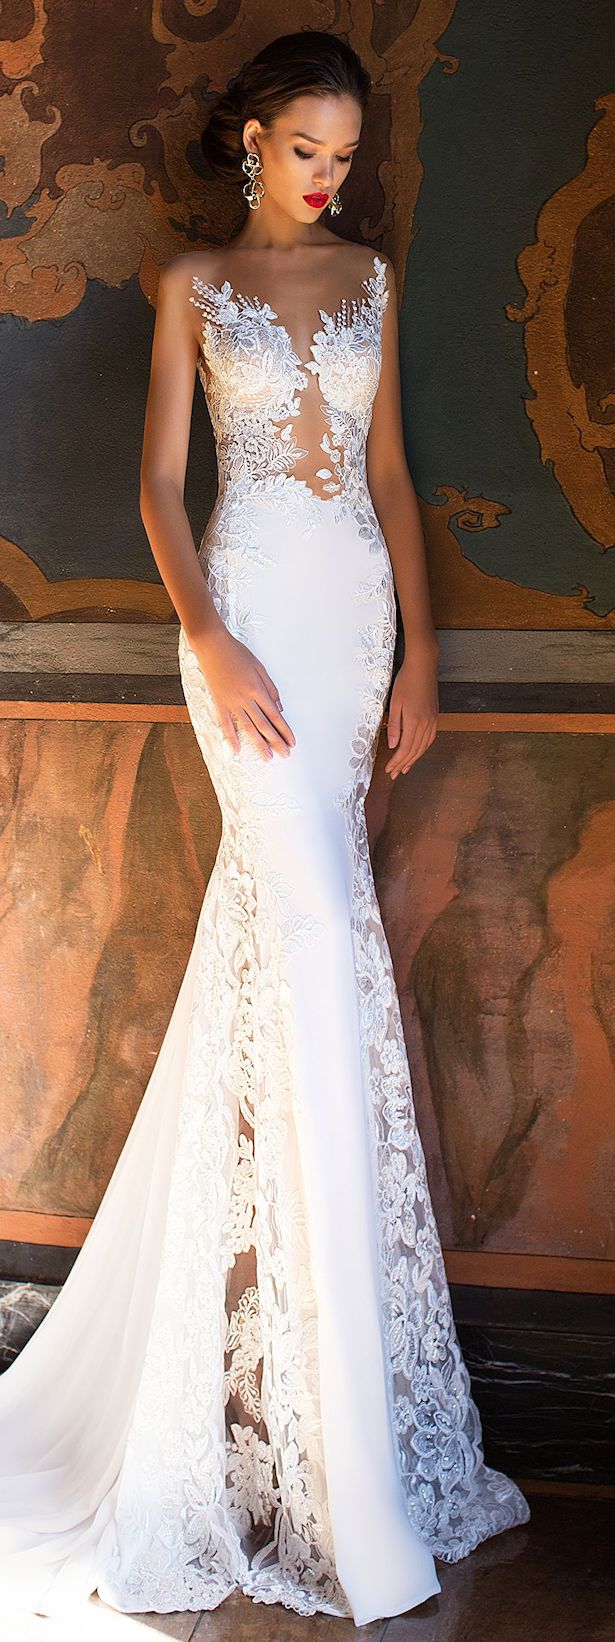 Wedding Dress by Milla Nova White Desire 2017 Bridal Collection - Lorena